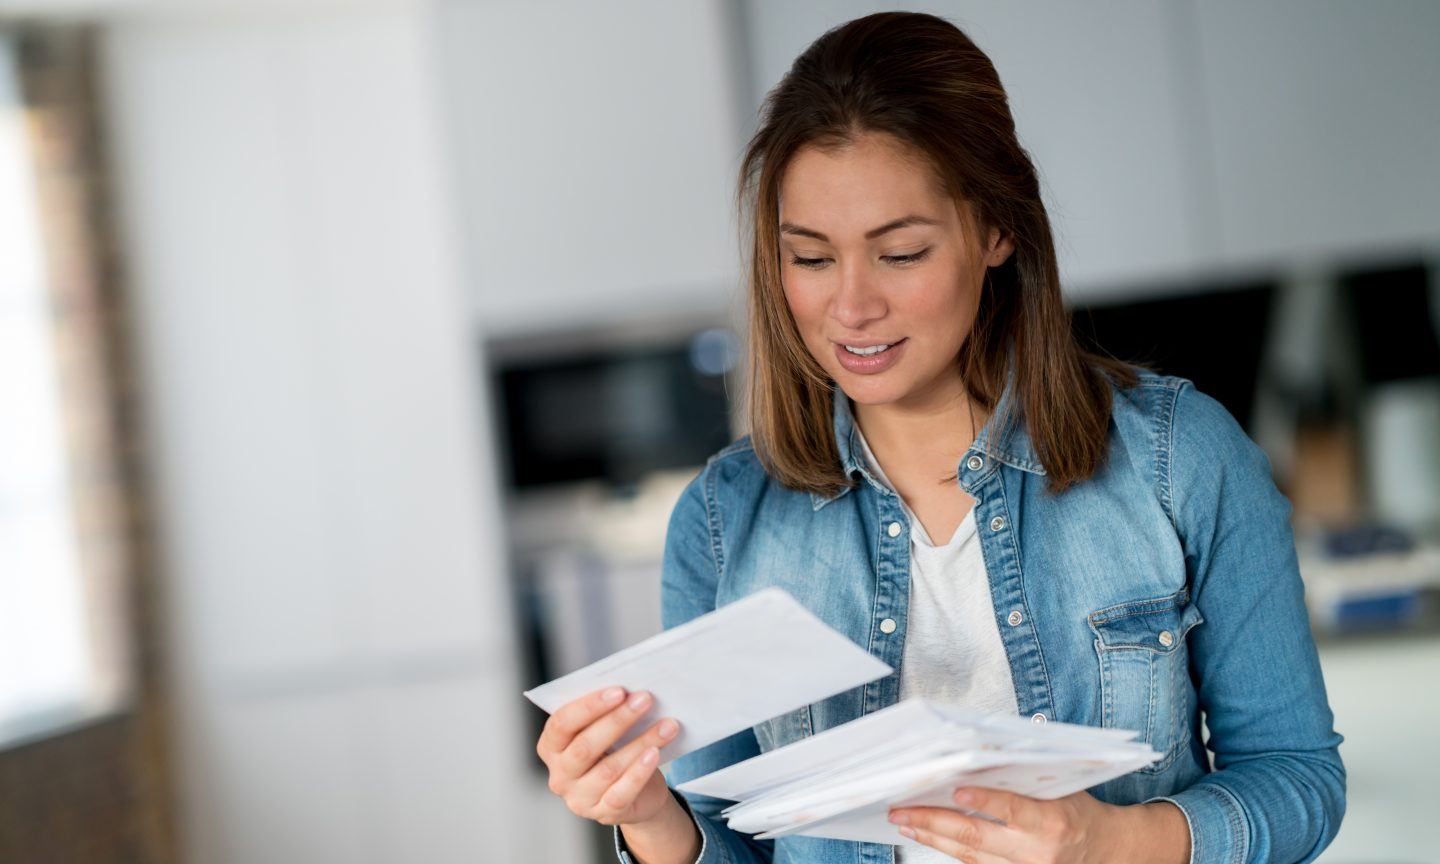 Some Taxpayers Face a Desperate Wait for IRS Refunds - NerdWallet